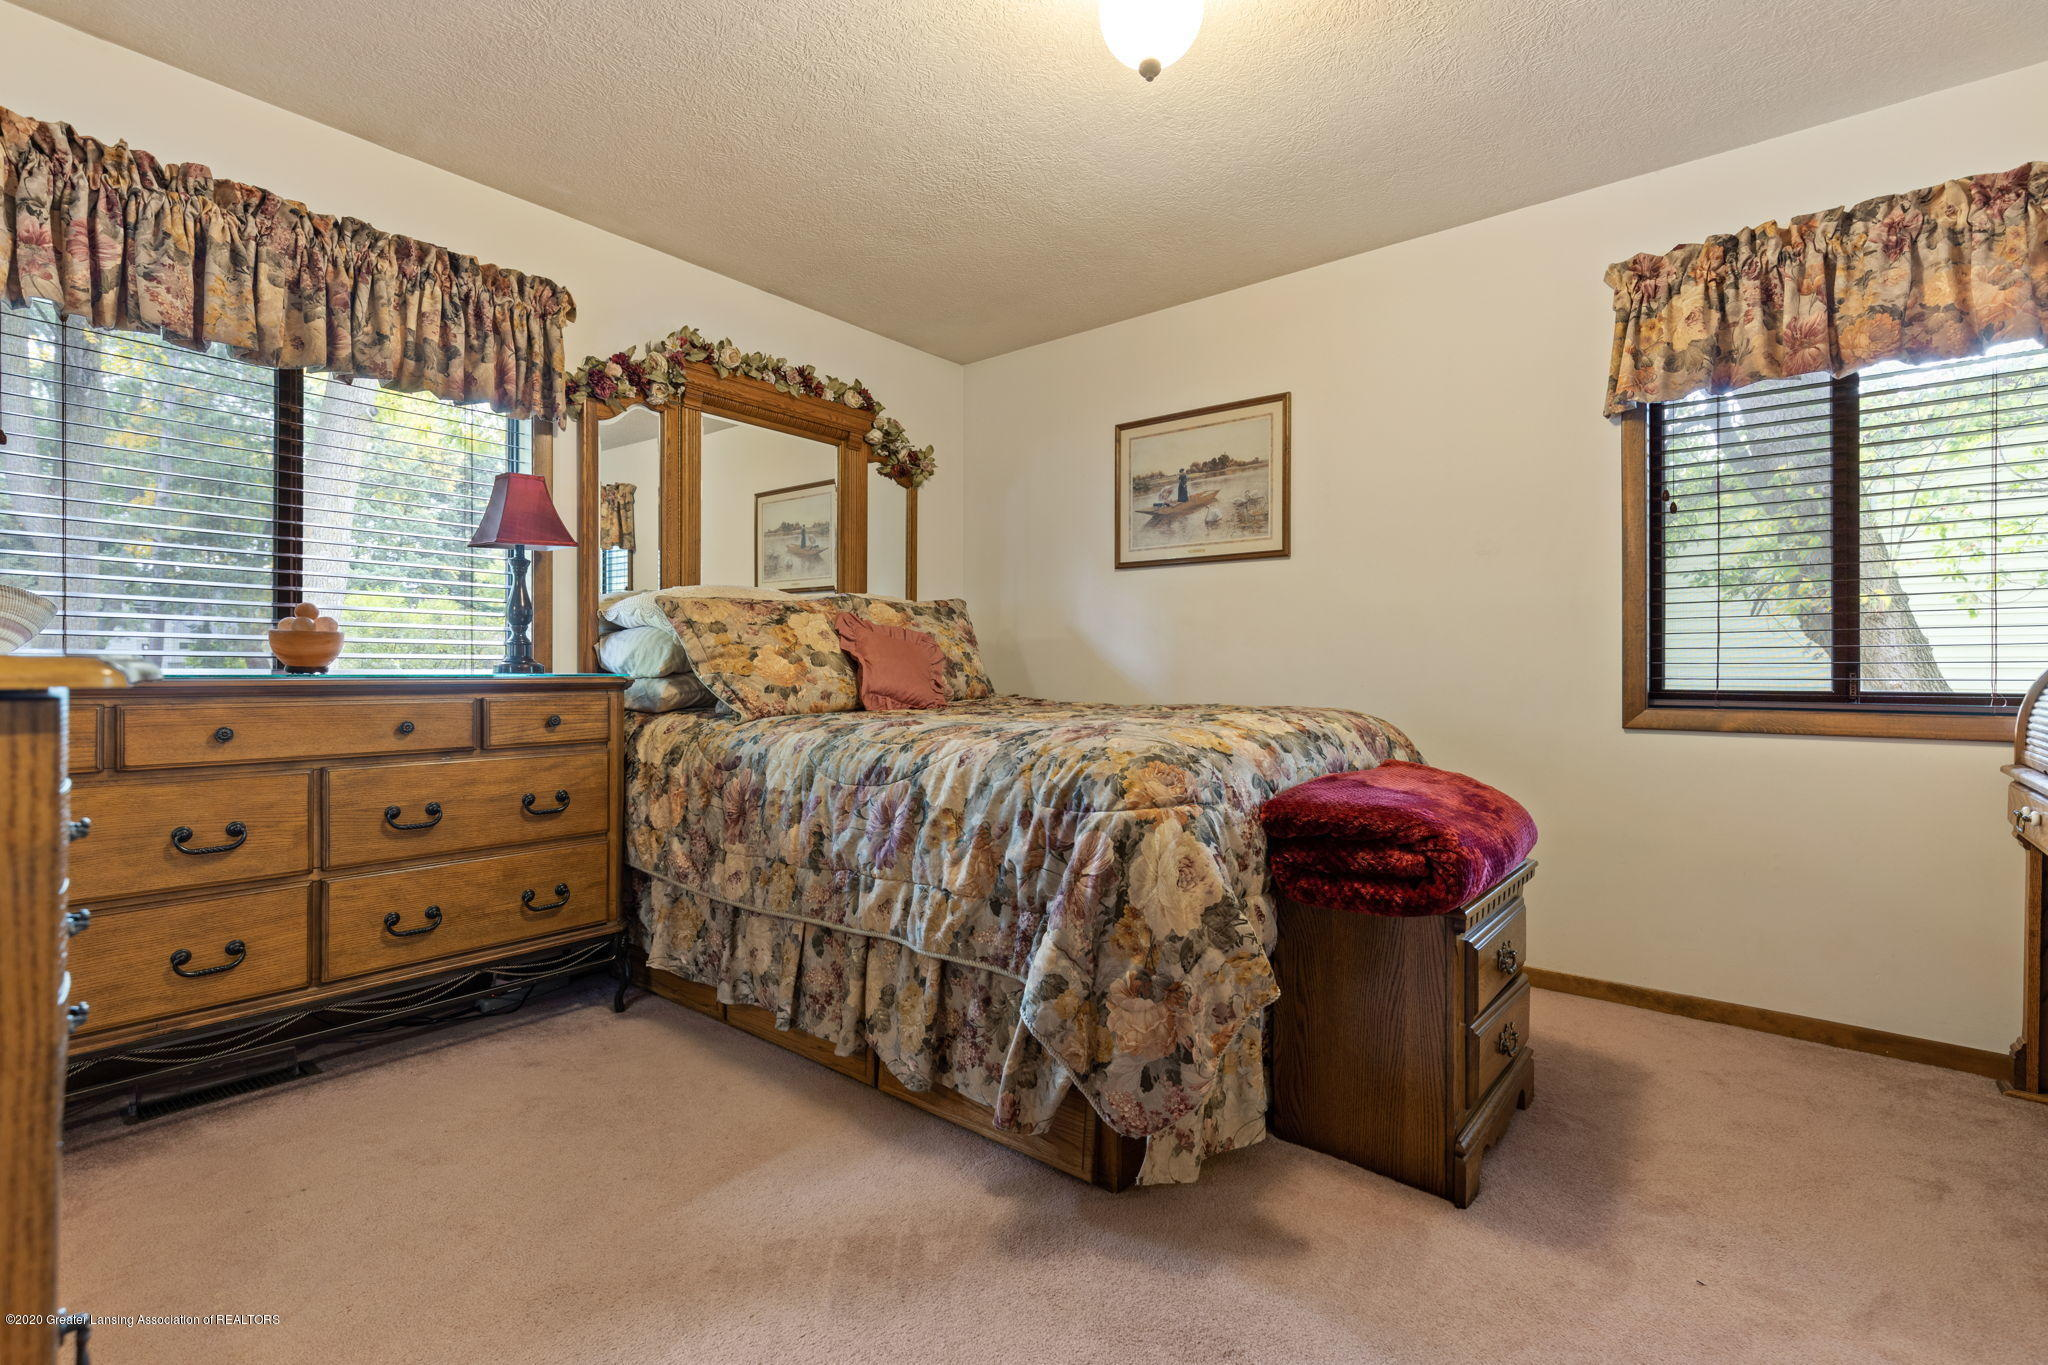 617 Green St - 22-web-or-mls-1P6A9471 - 19